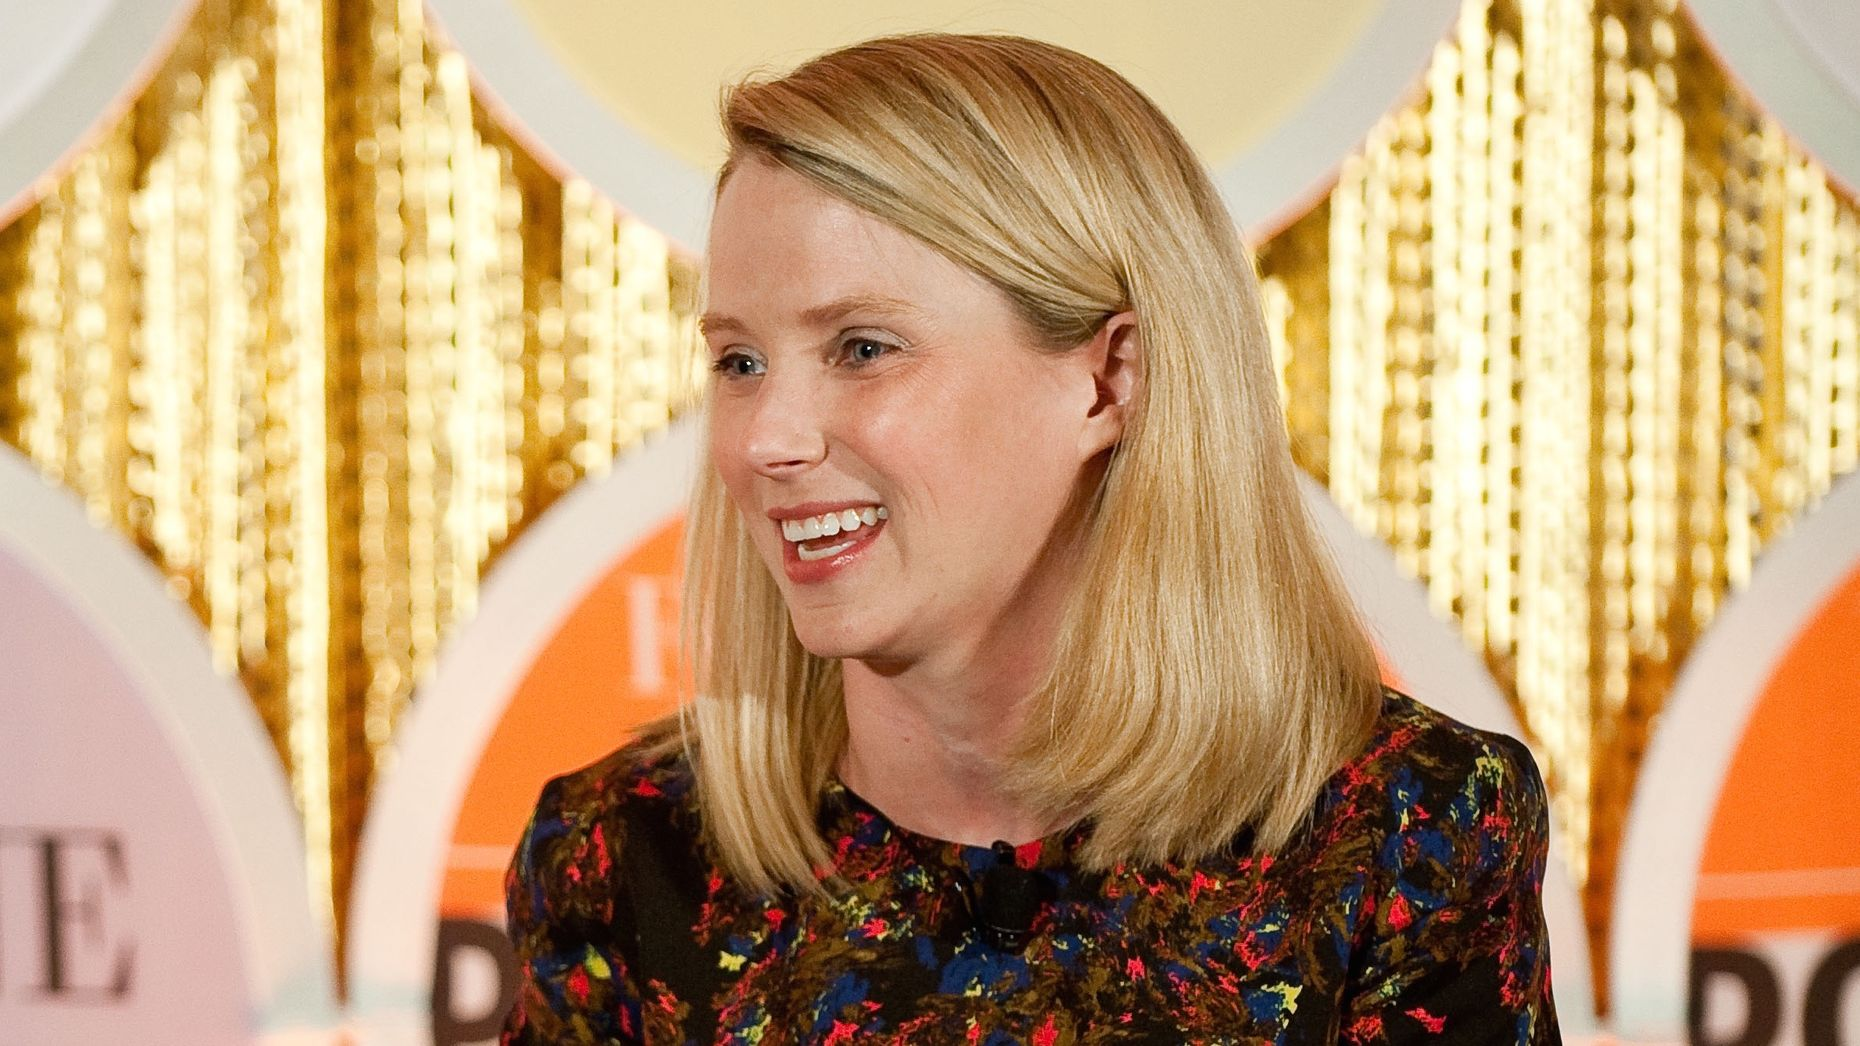 Marissa Mayer. Photo by Flickr/Fortune Live Media.